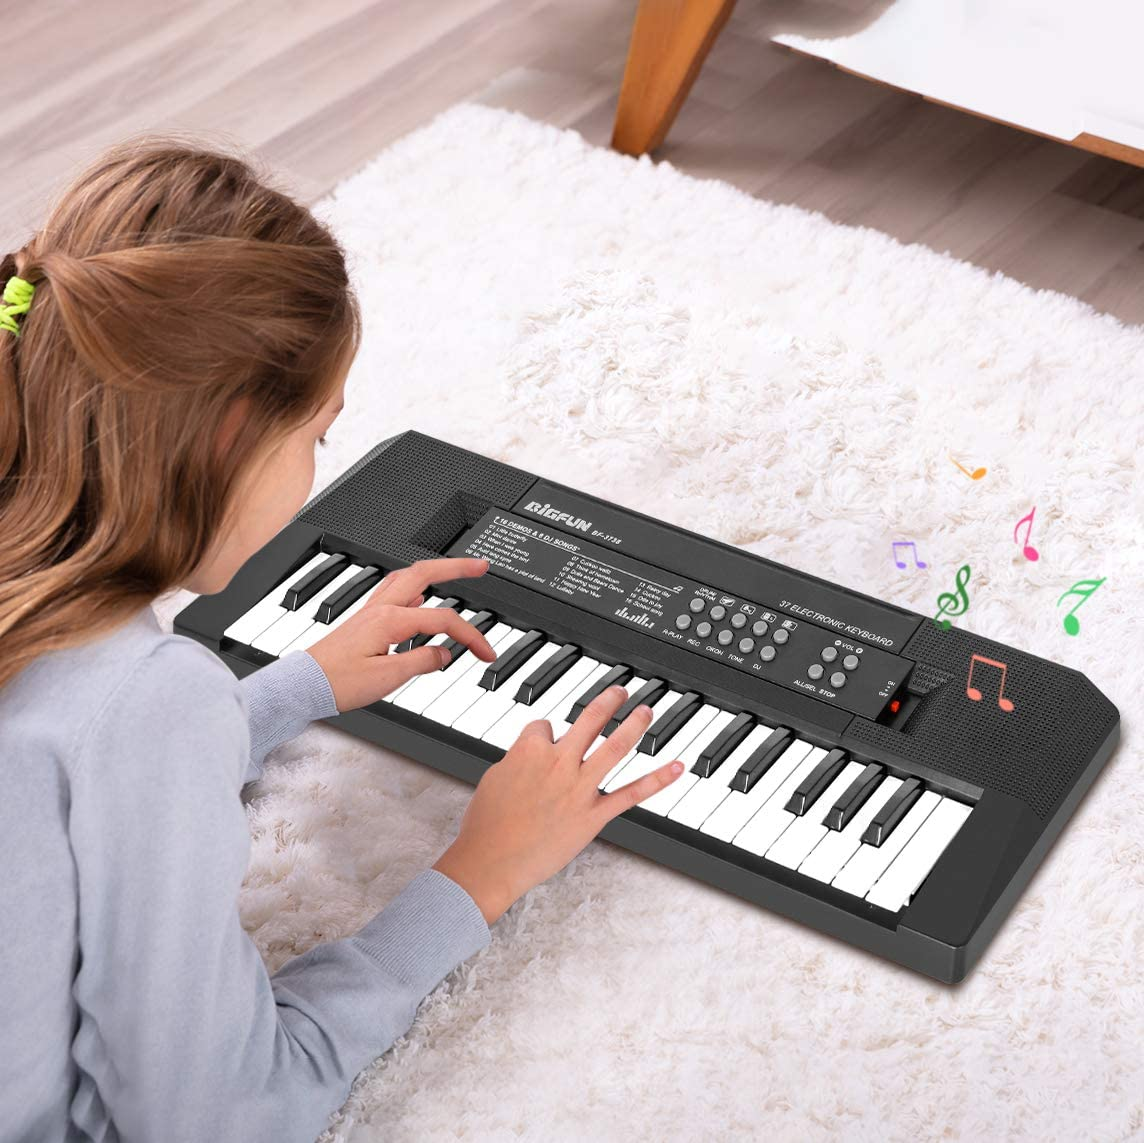 m zimoon Kids Piano Keyboard Gift for 2 3 4 5 Years Old Boys Girls 37 Keys Electronic keyboard Portable Musical Piano with Microphone and Power Connector